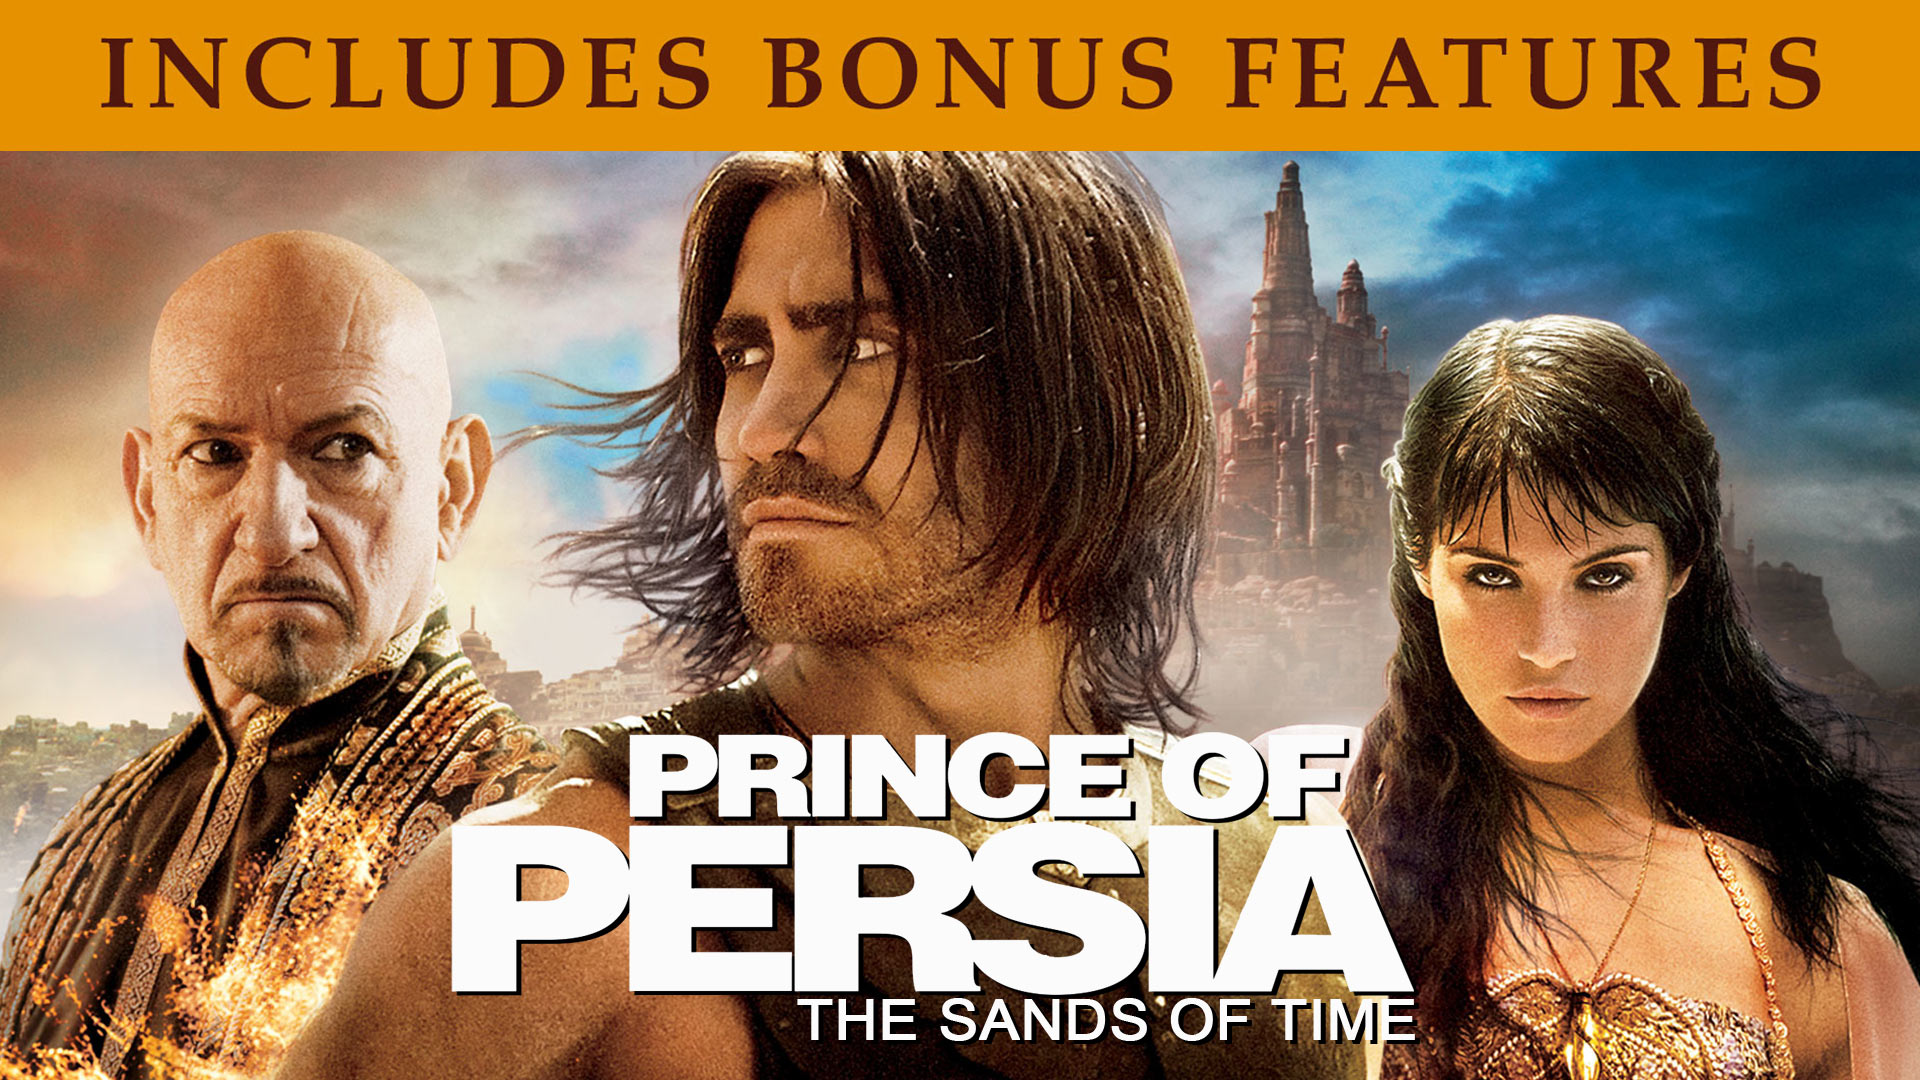 Prince of Persia: The Sands of Time (Plus Bonus Content)